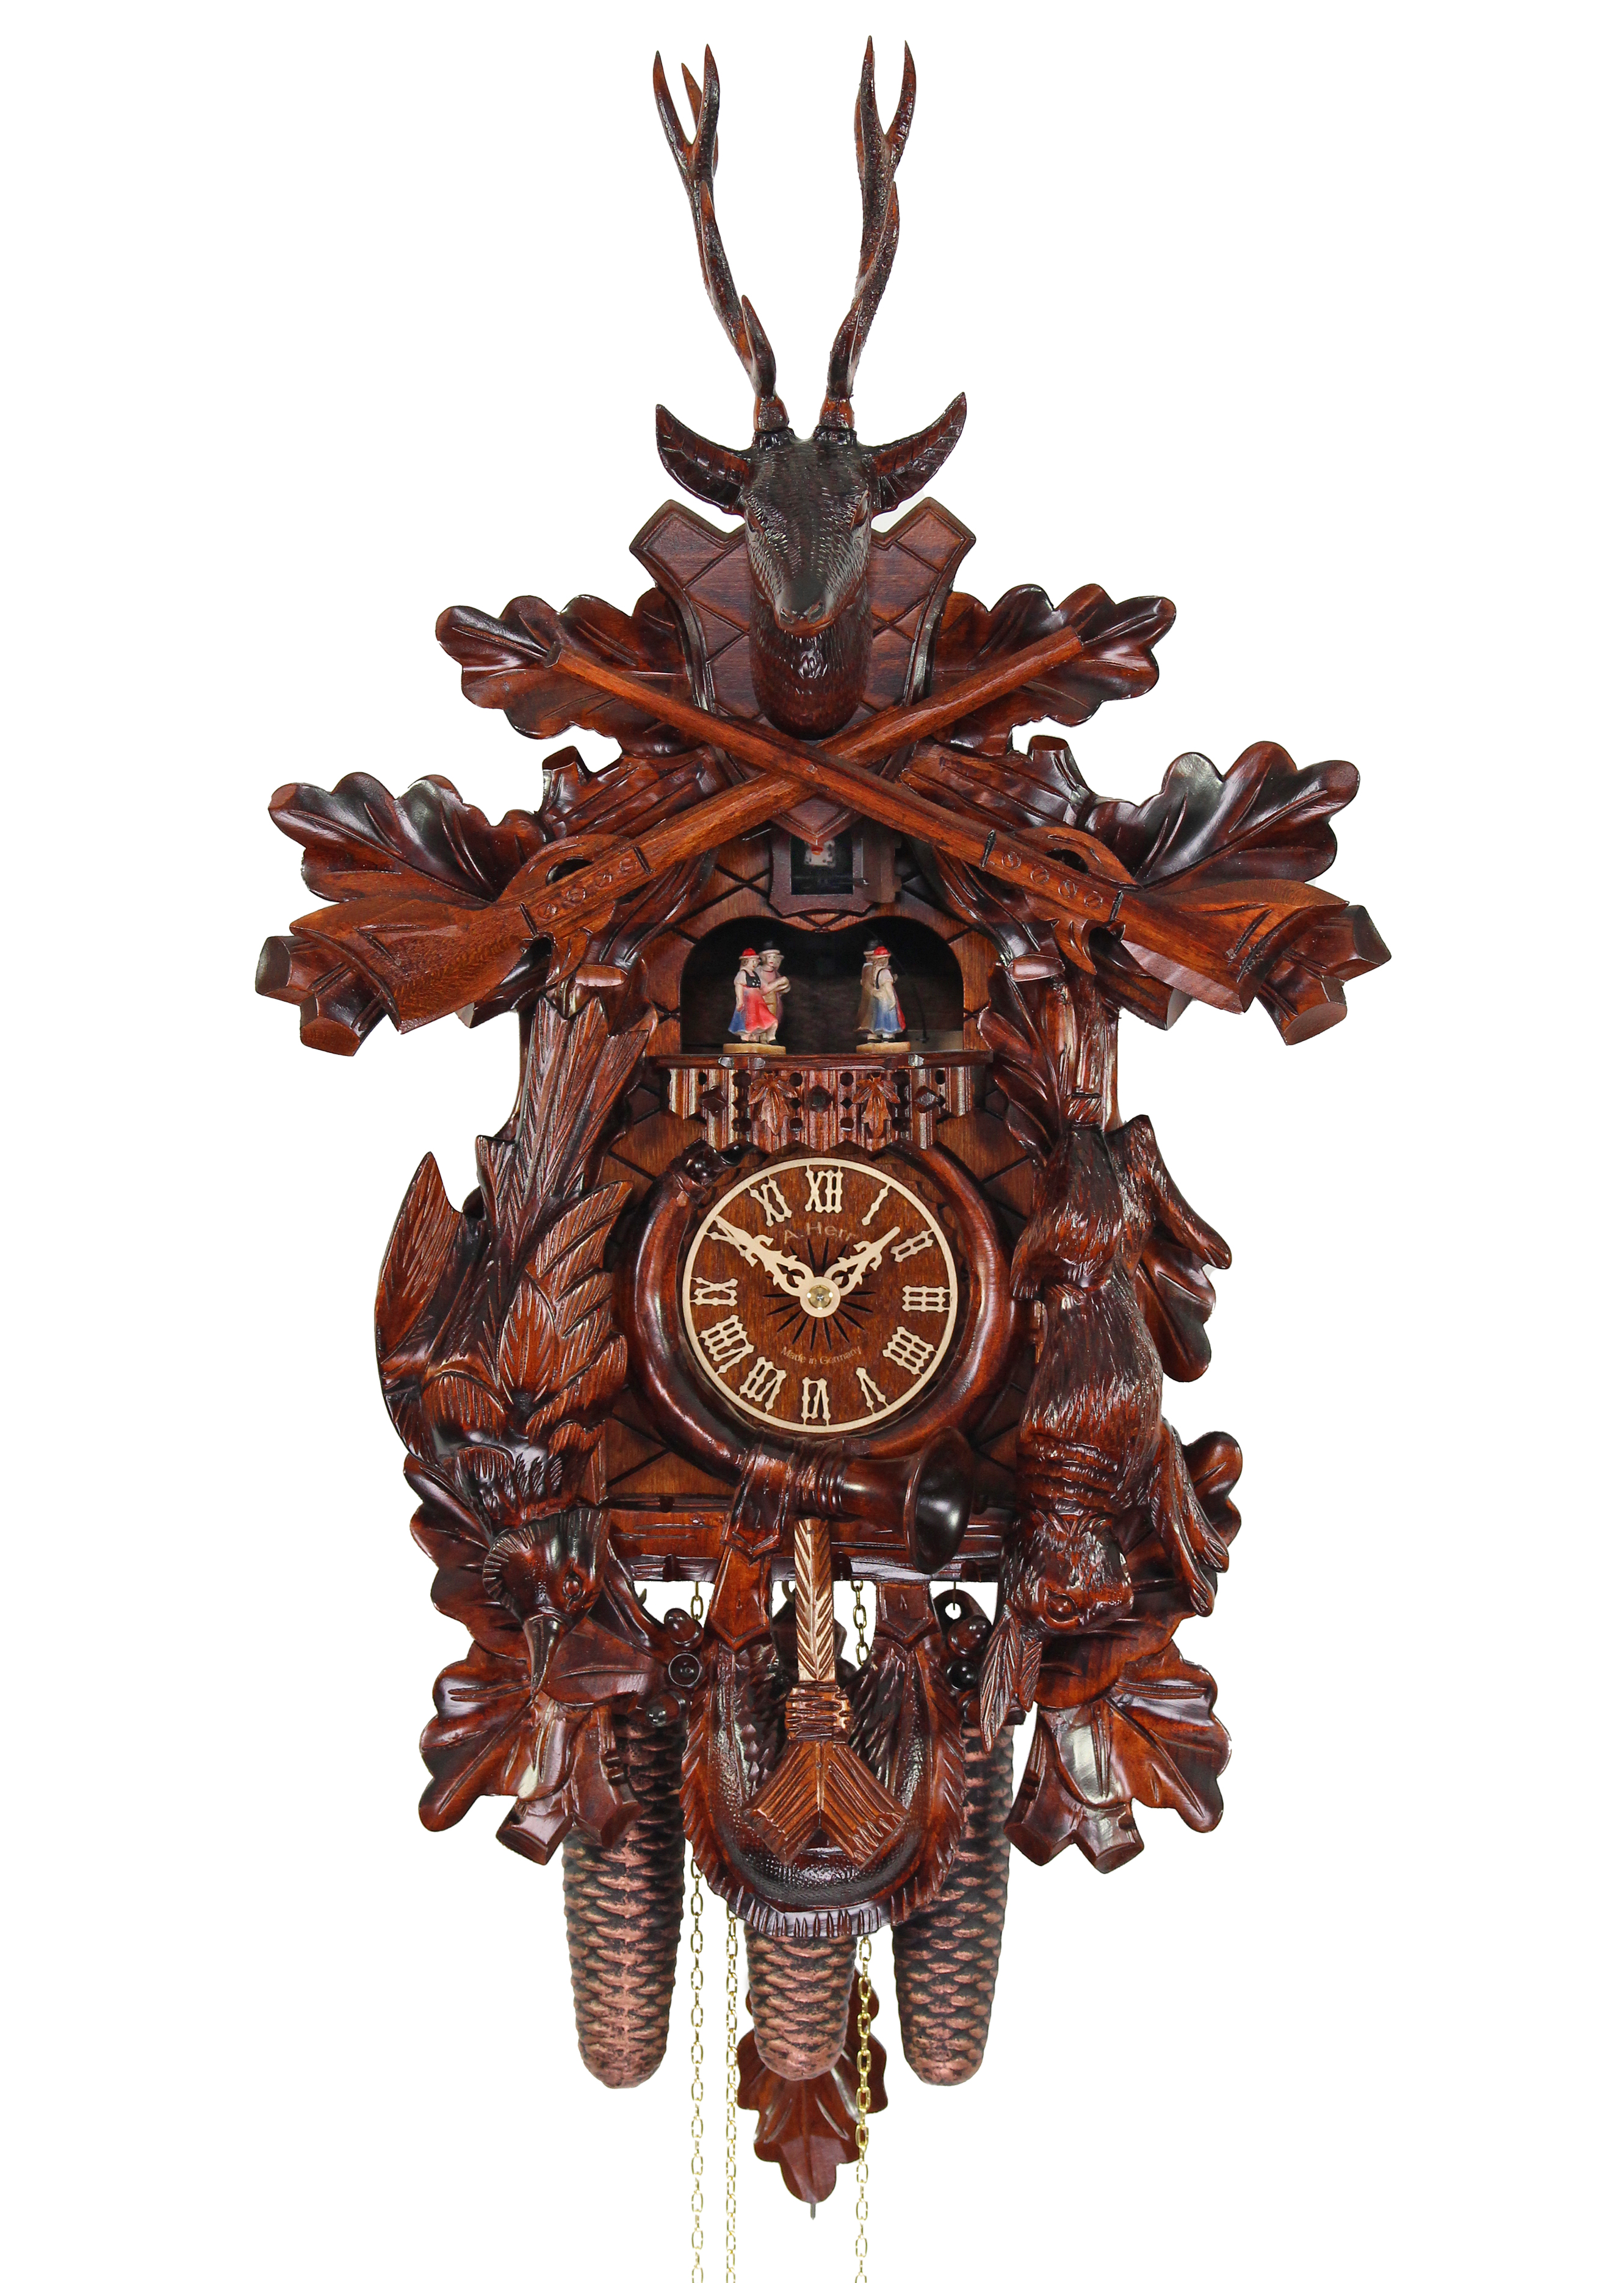 Adolf Herr Cuckoo Clock After The Hunt Handshingled 8 Day With Music Nr Ah 585 1 8tmt